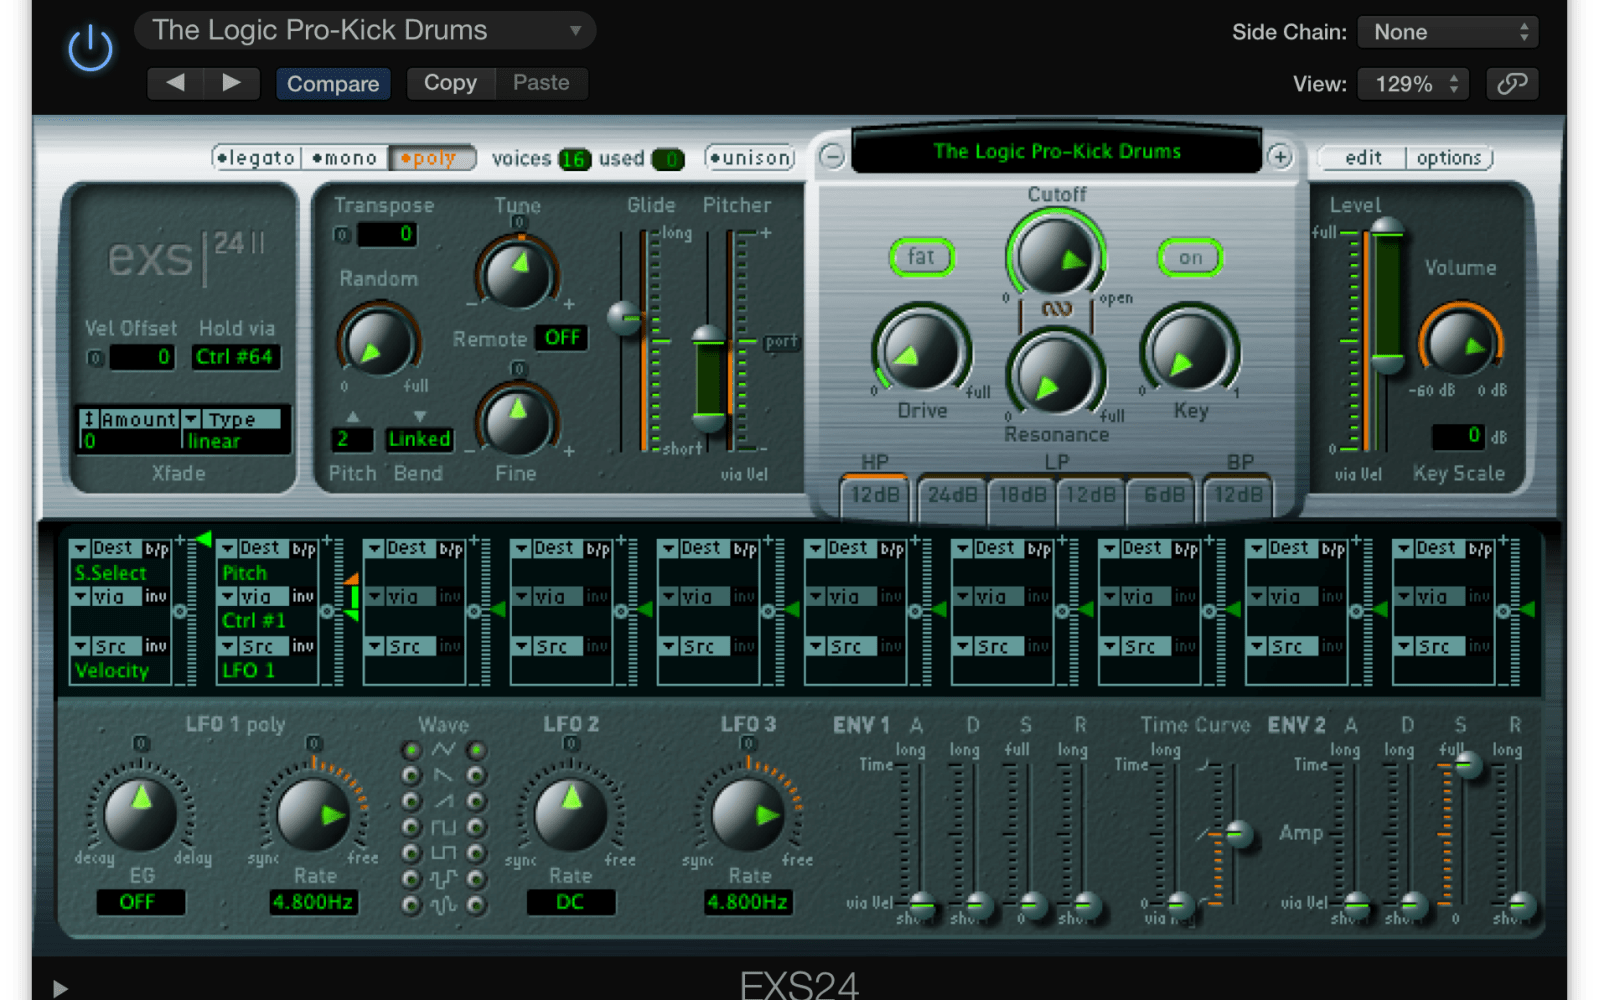 The Logic Pros: How to create custom sampler instruments using any